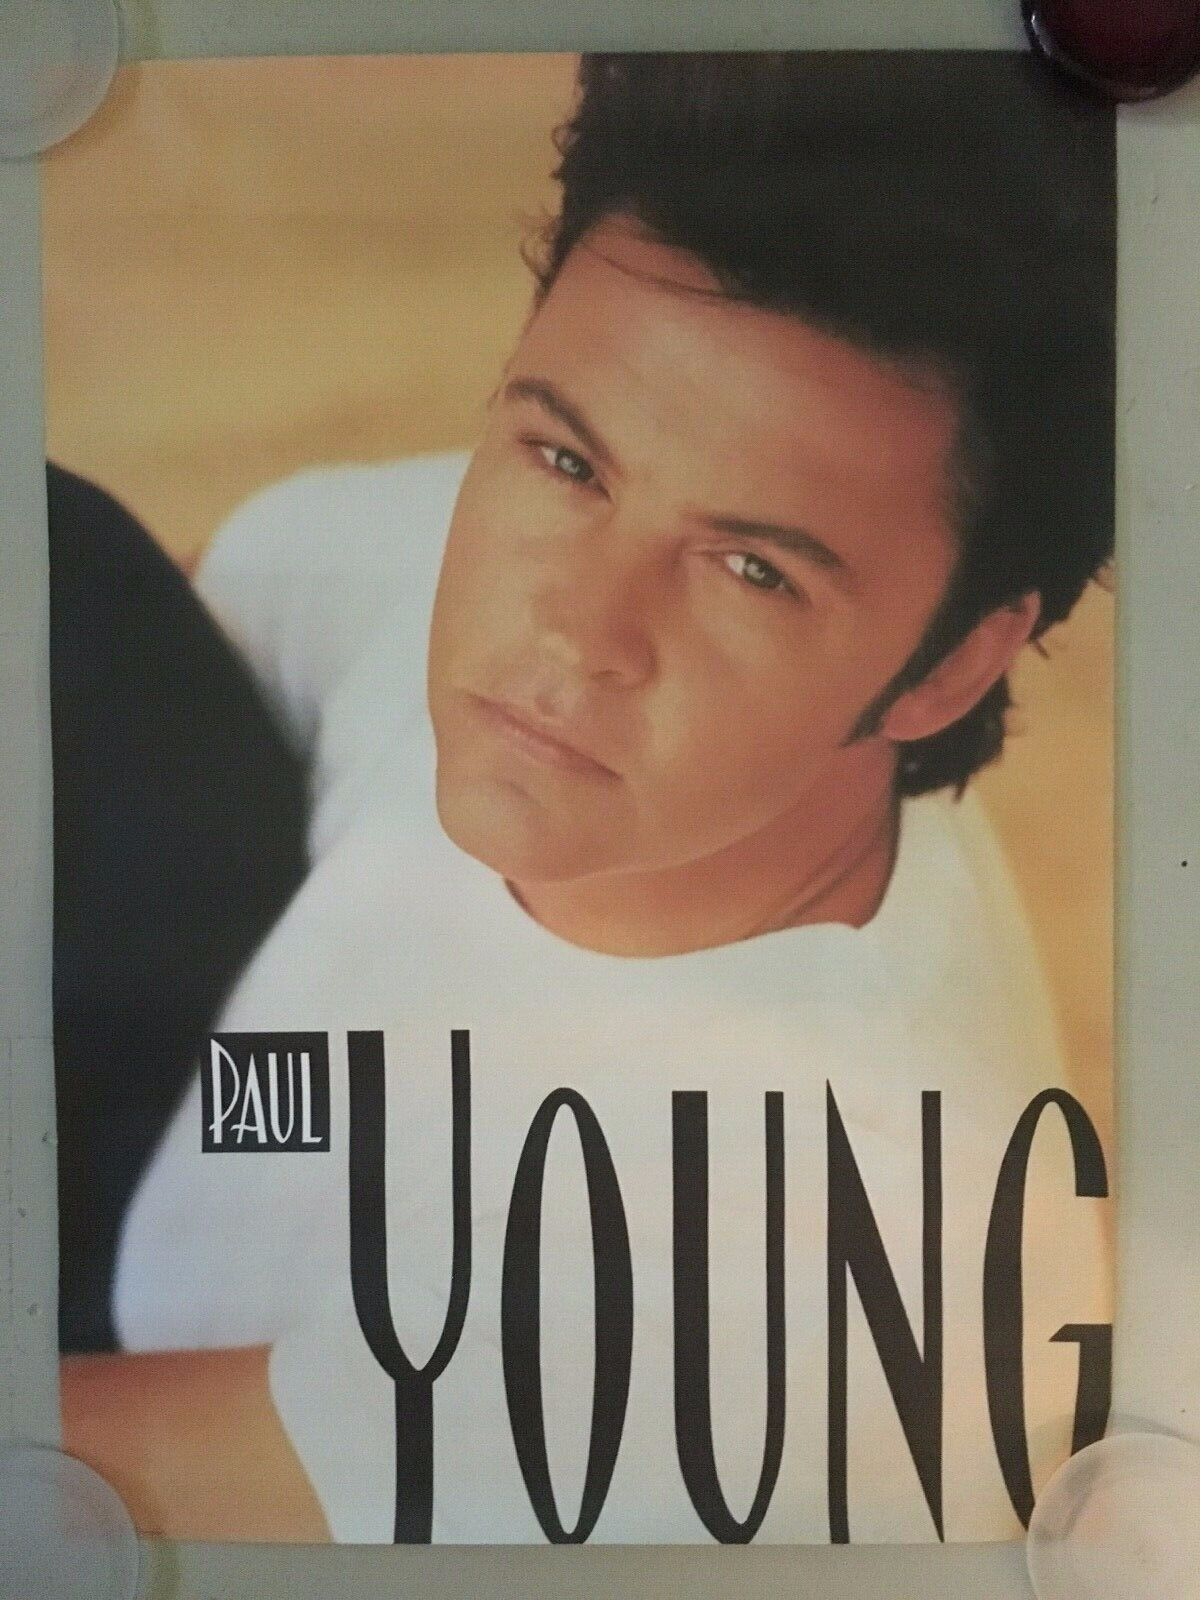 PAUL YOUNG - Other Voices - 90 Promo Poster - 24.5x37 - USA USED - $7.99